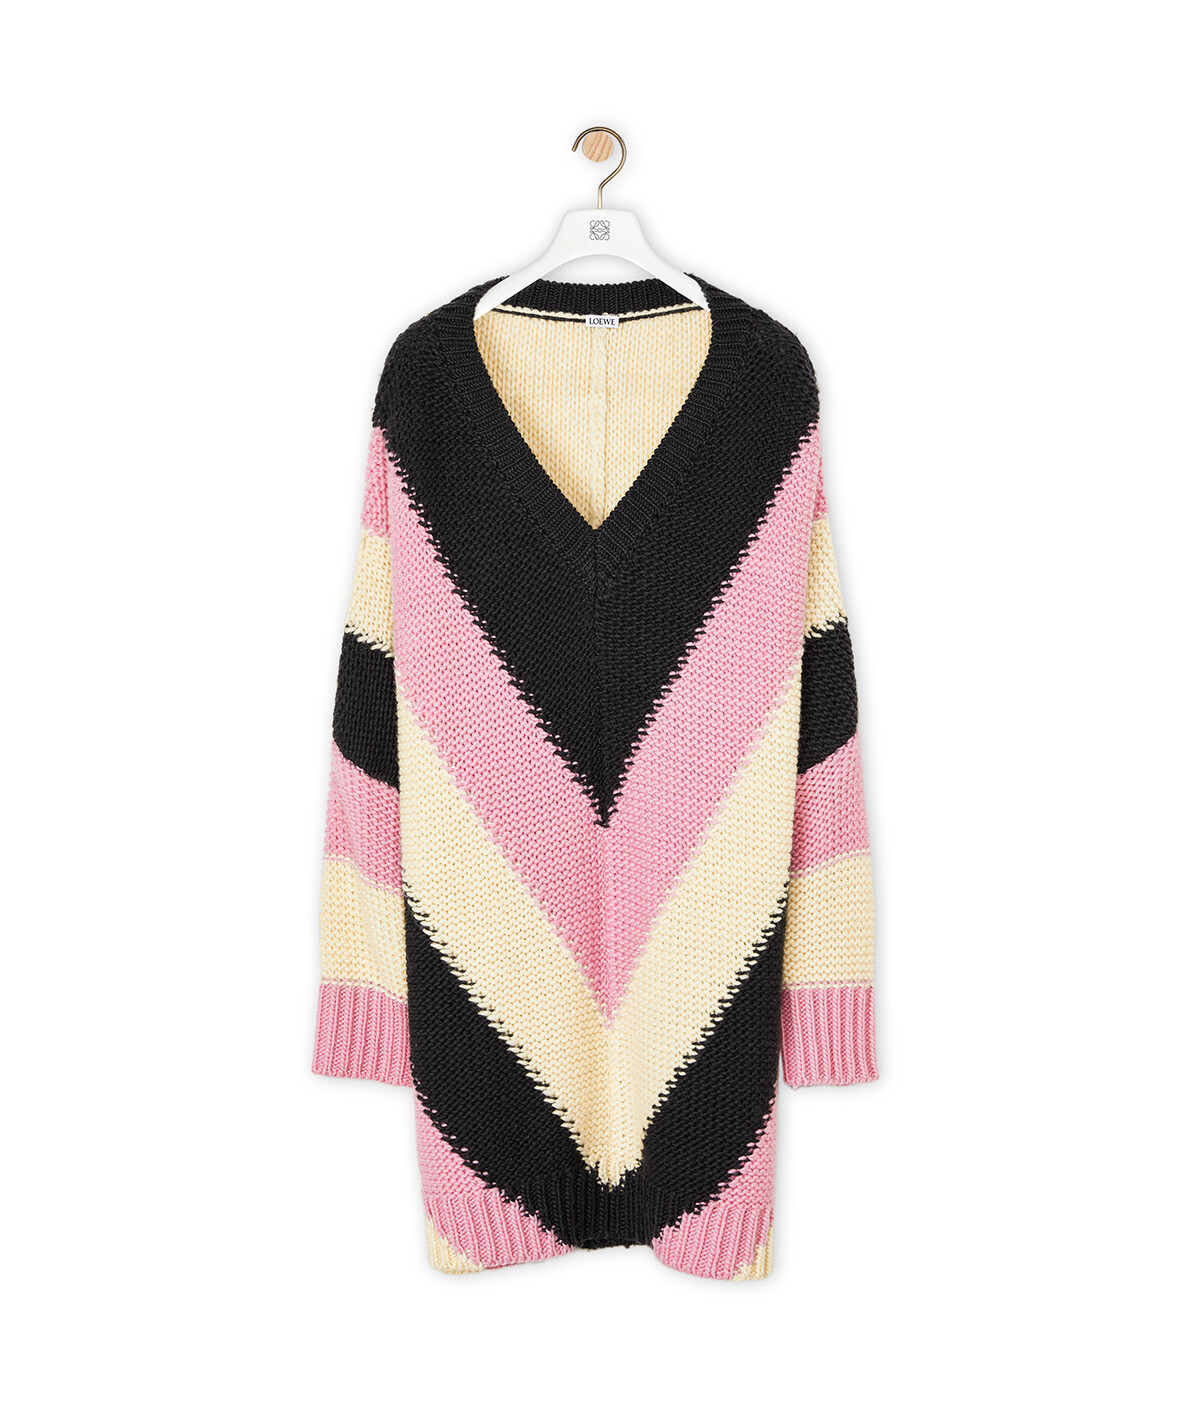 LOEWE Stripe Ov V Neck Sweater Pink/Grey front